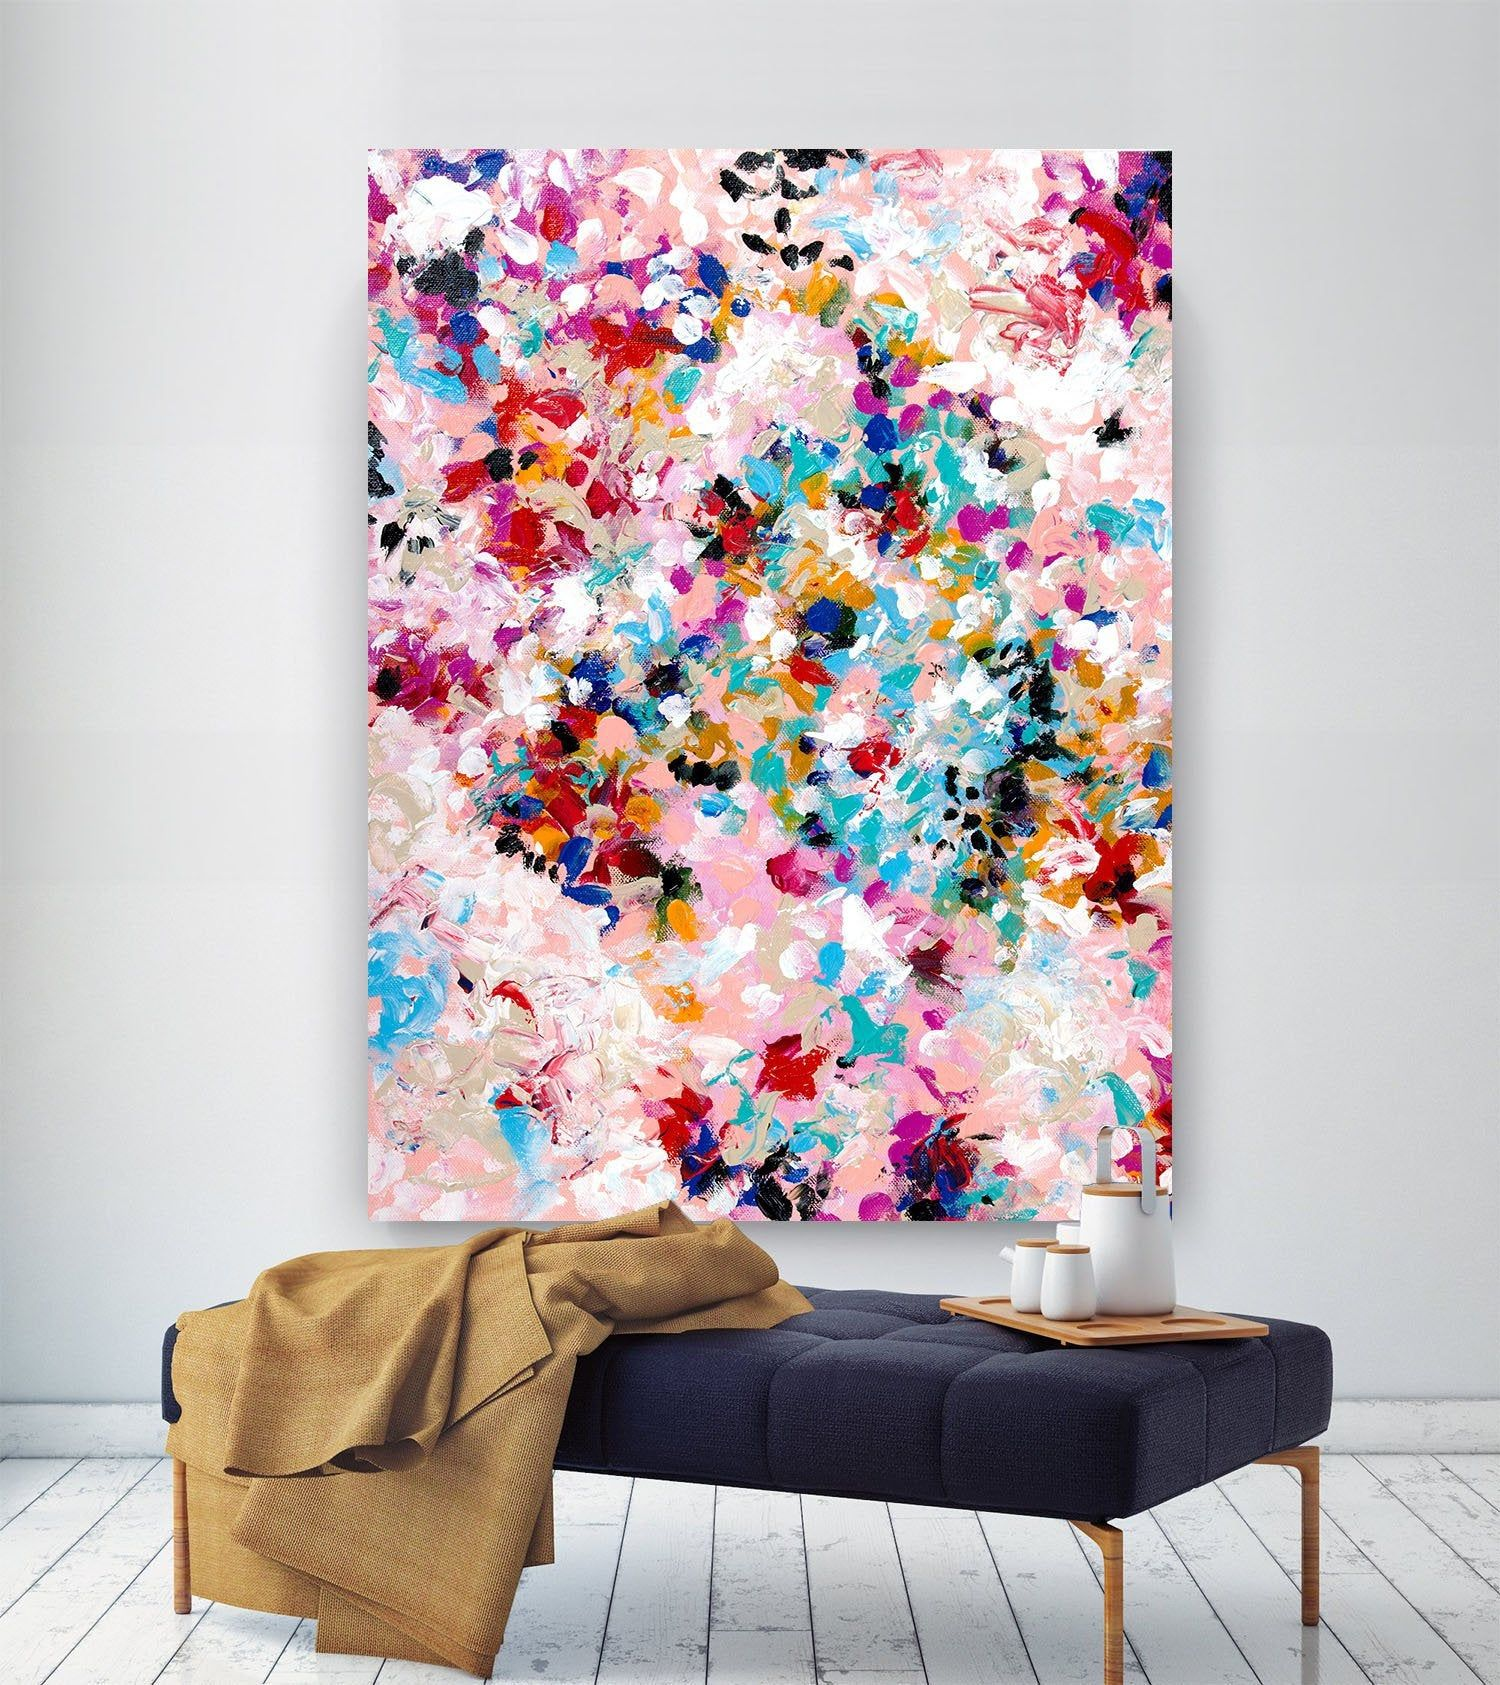 Extra Large Wall Art on Canvas, Original Abstract Paintings , Contemporary Art, Mdoern Living Room Decor ,Office Oversize Artworks lac637